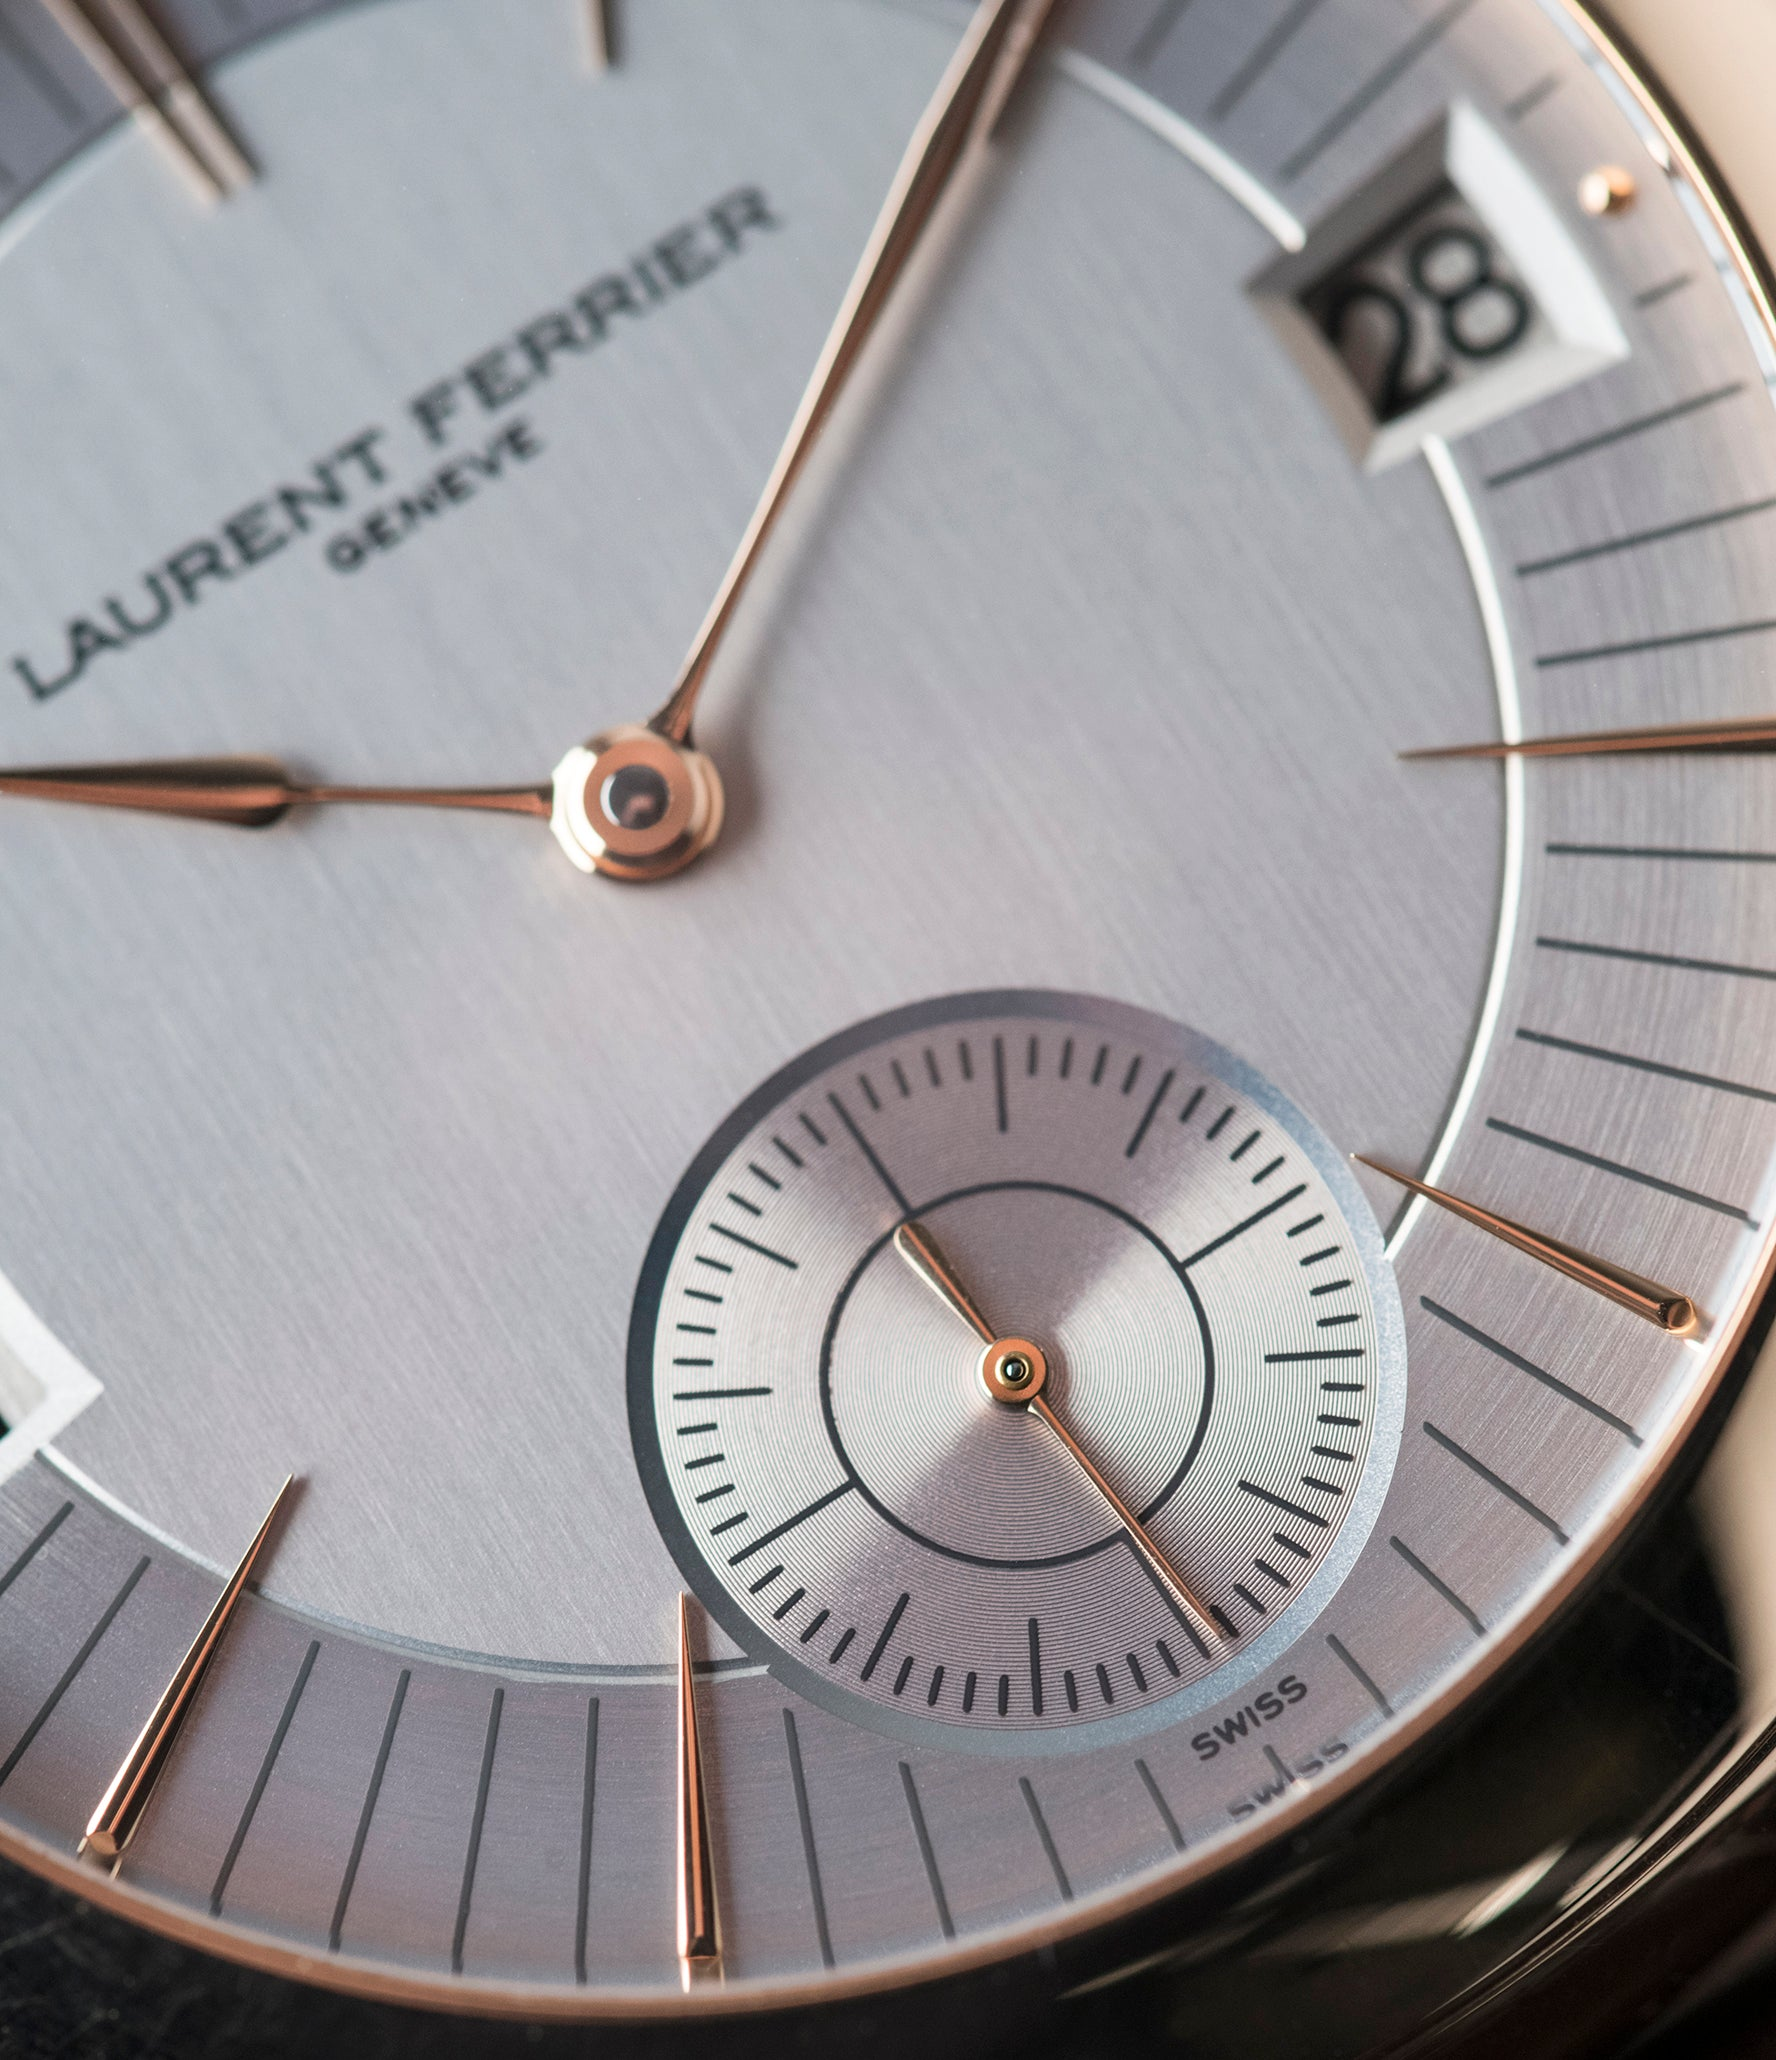 silver dial Laurent Ferrier Galet Traveller Micro Rotor LF 230.01 rose gold watch additional prototype dial for sale online at A Collected Man London UK approved reseller of preowned independent watchmakers